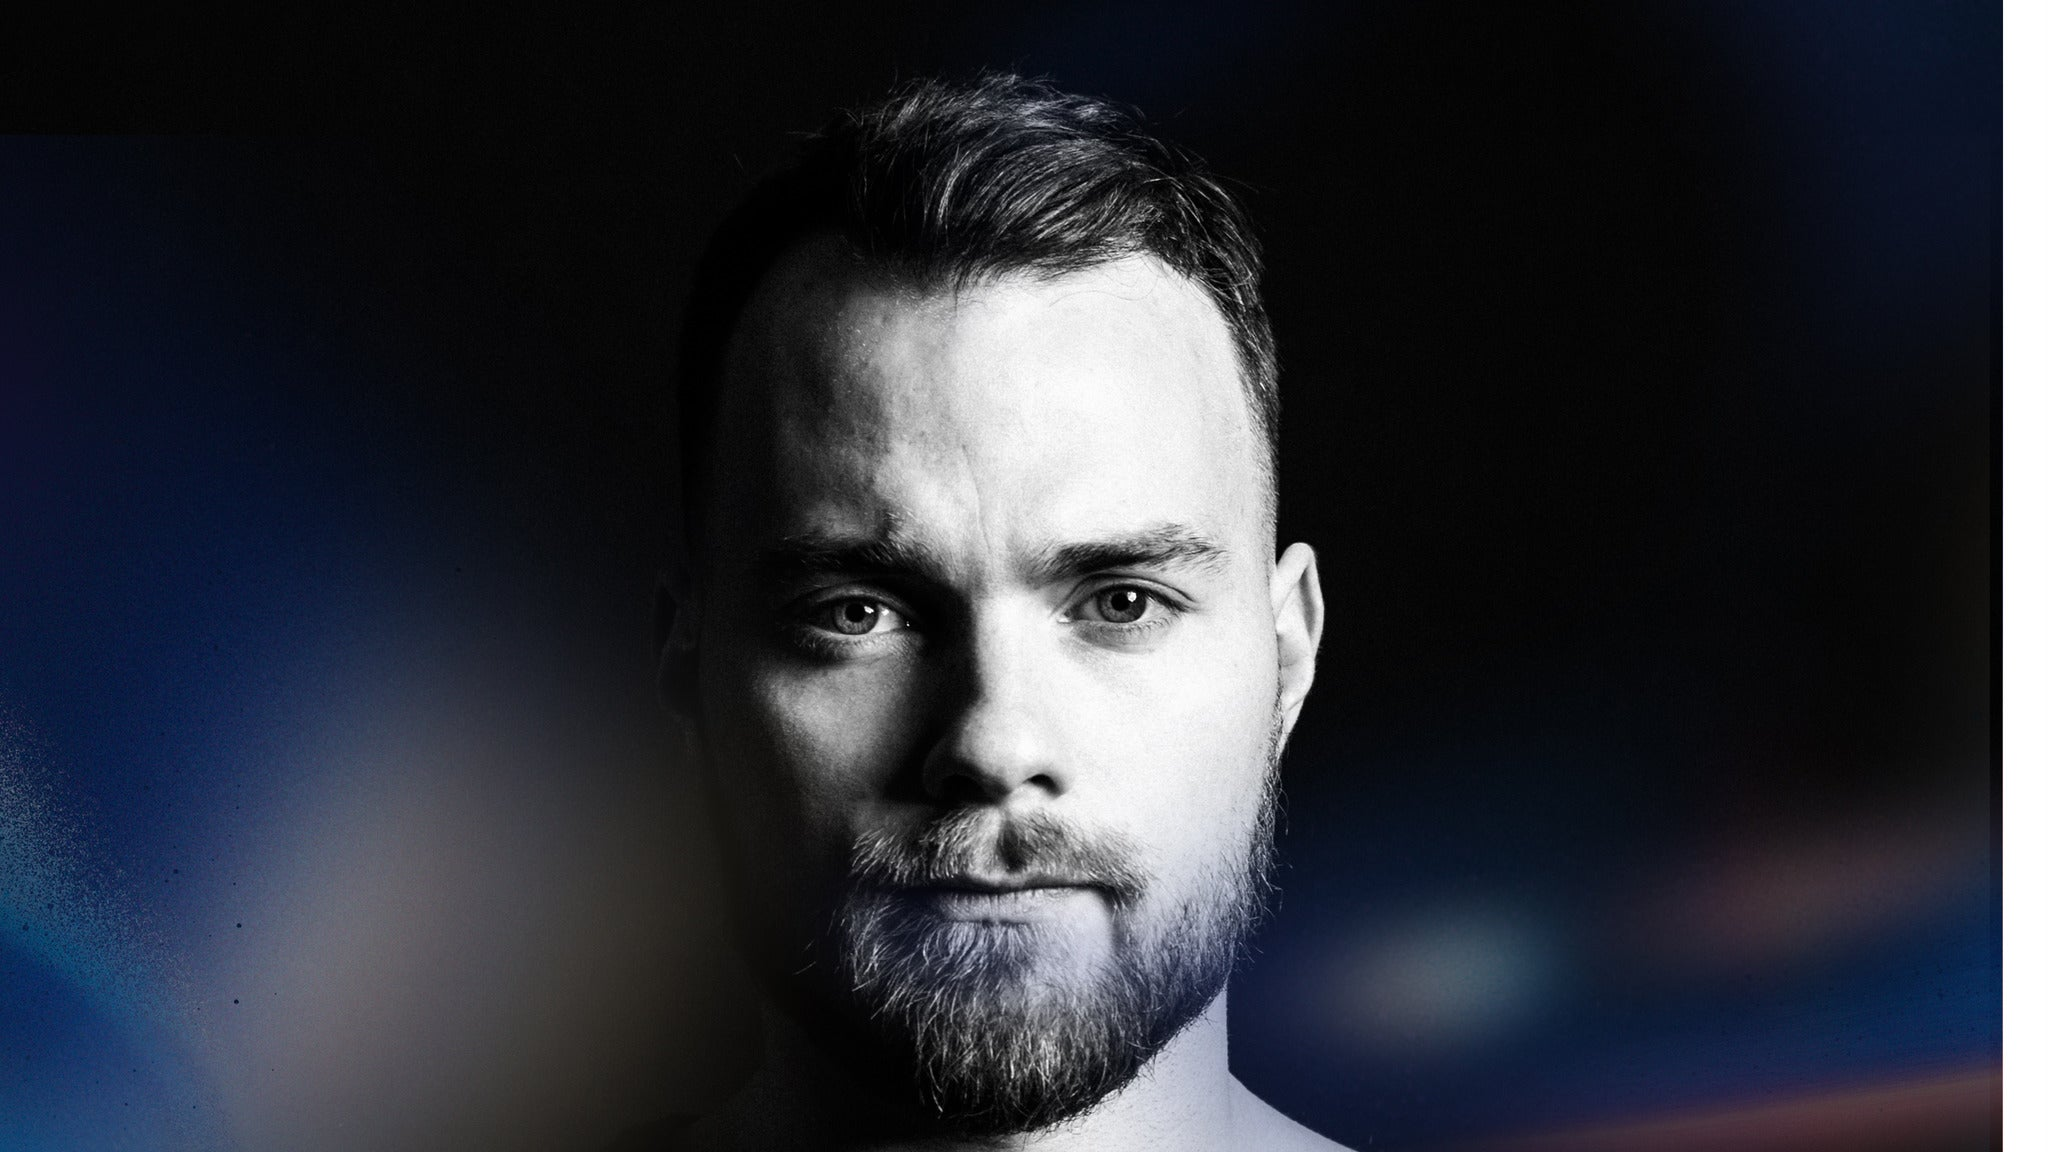 Ásgeir at Von Braun Center Arena